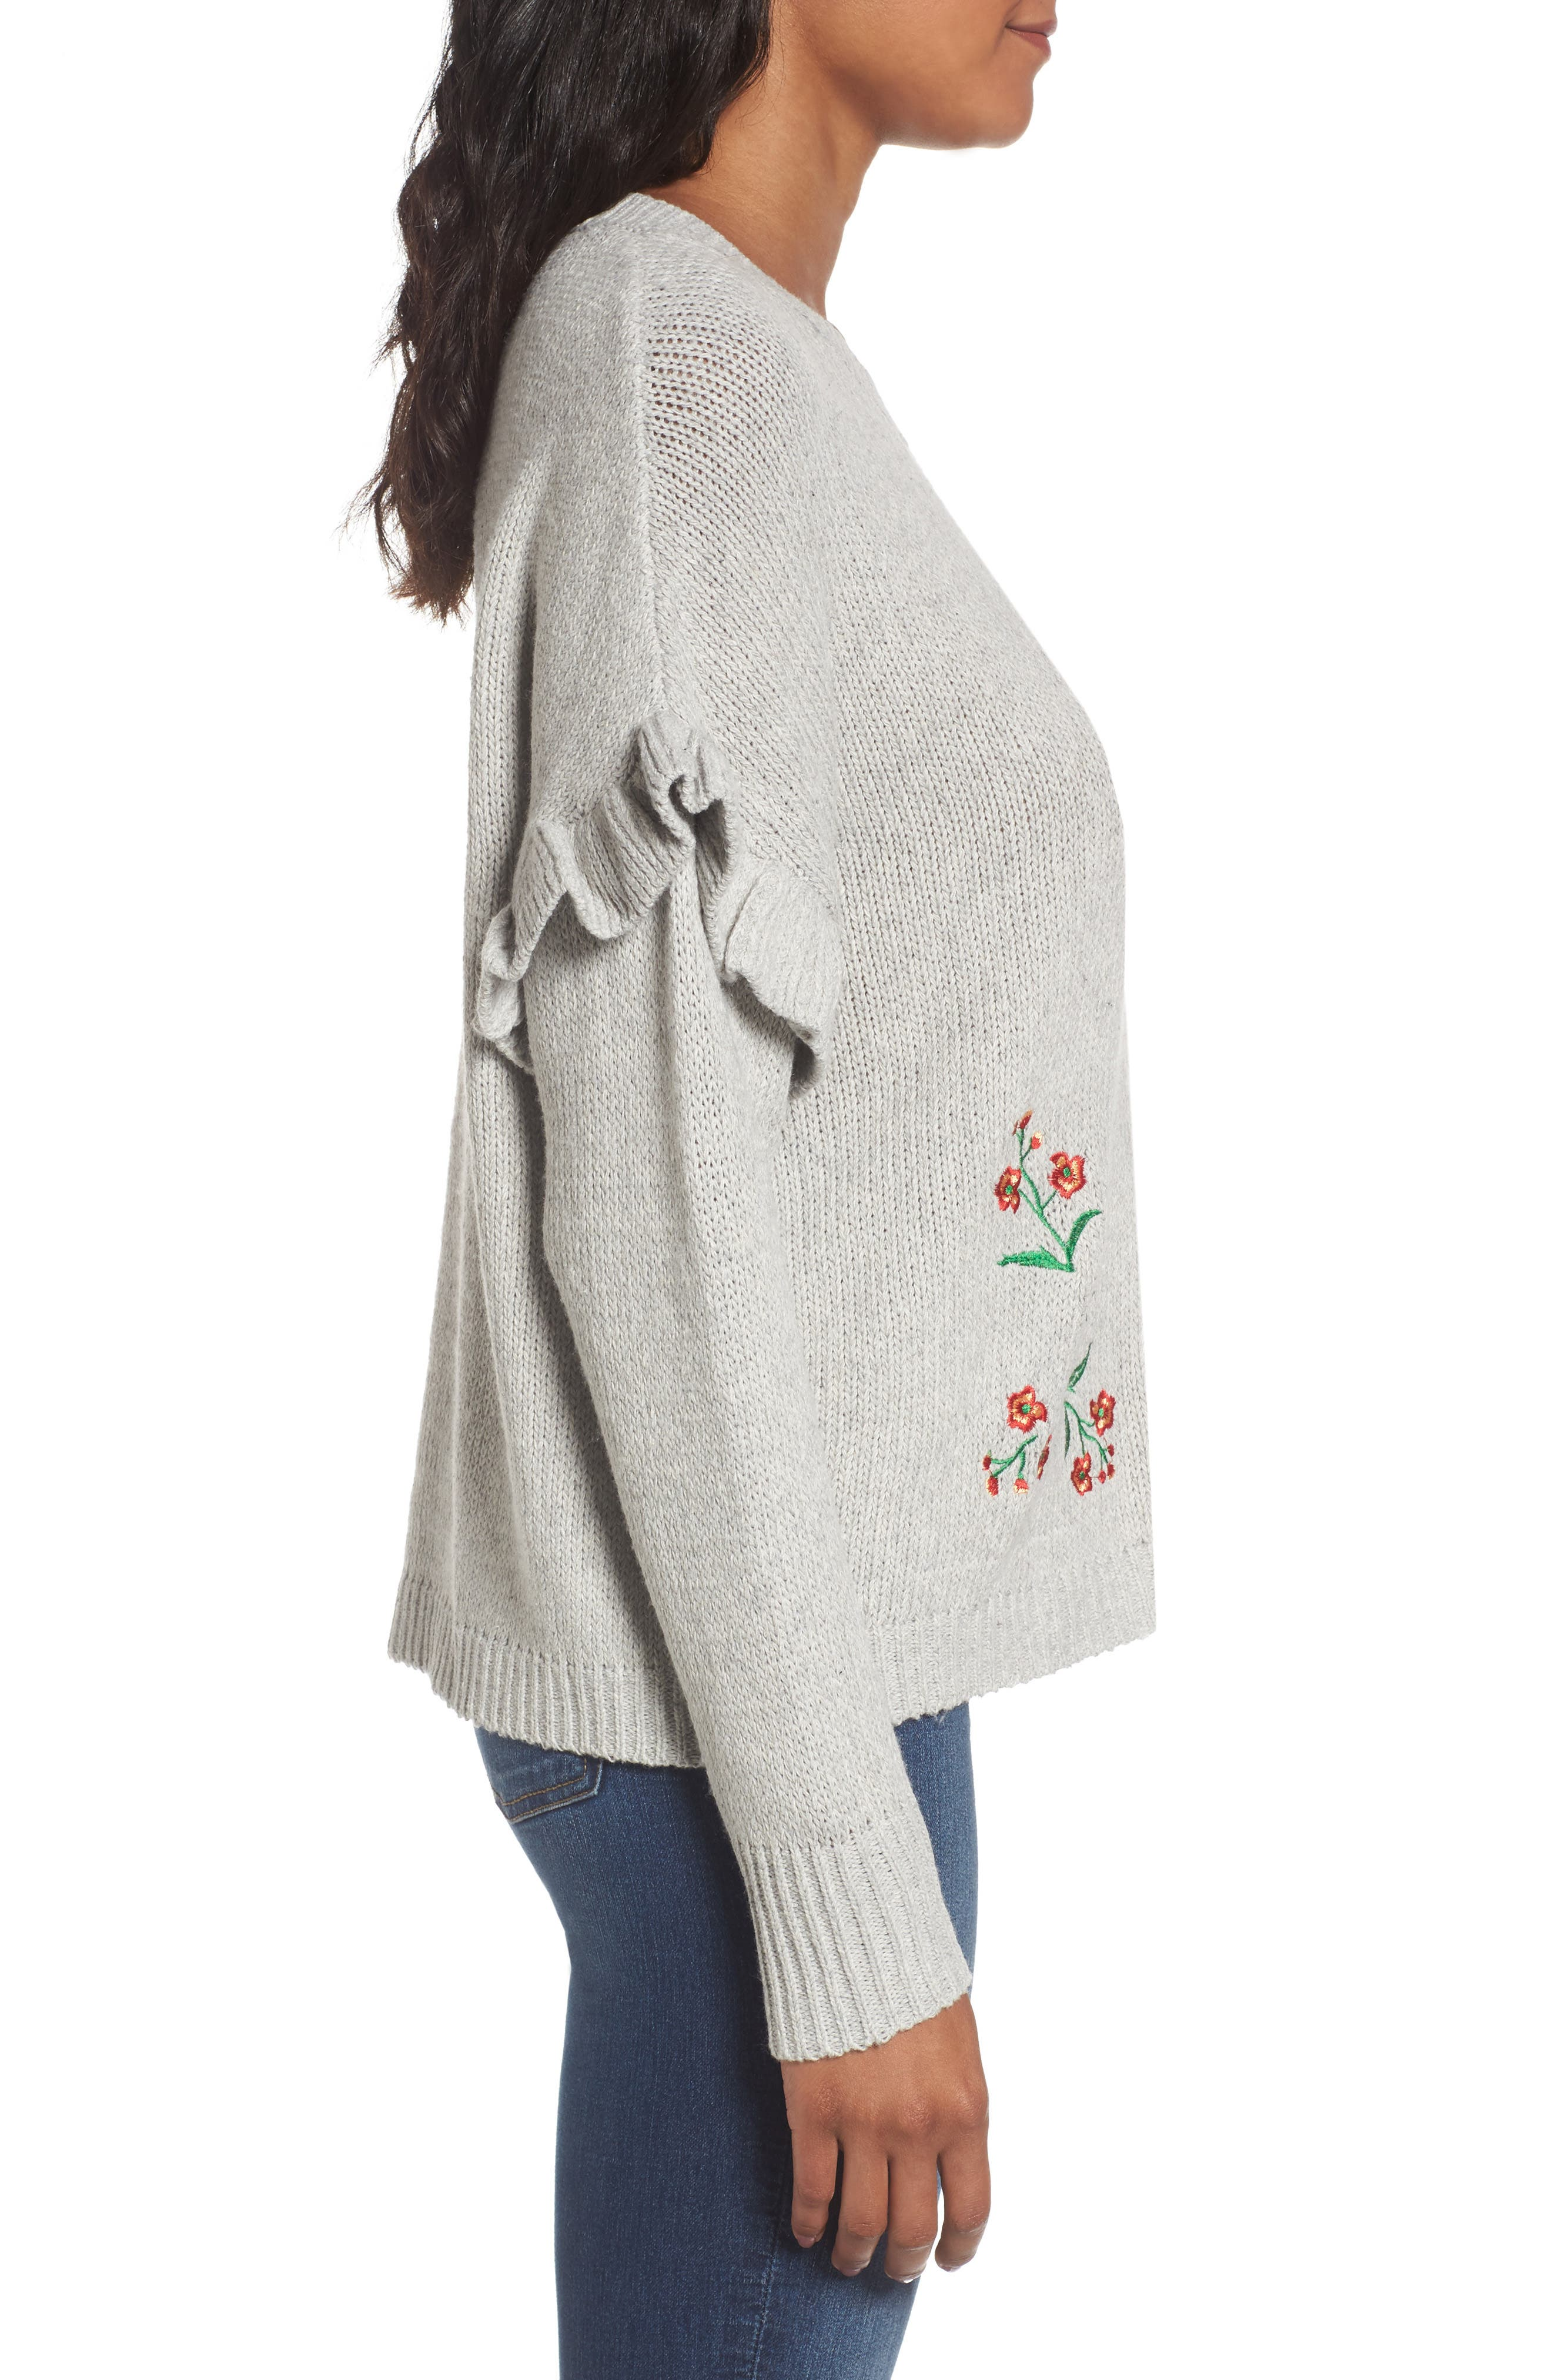 Ruffle Sleeve Embroidered Sweater,                             Alternate thumbnail 3, color,                             Grey